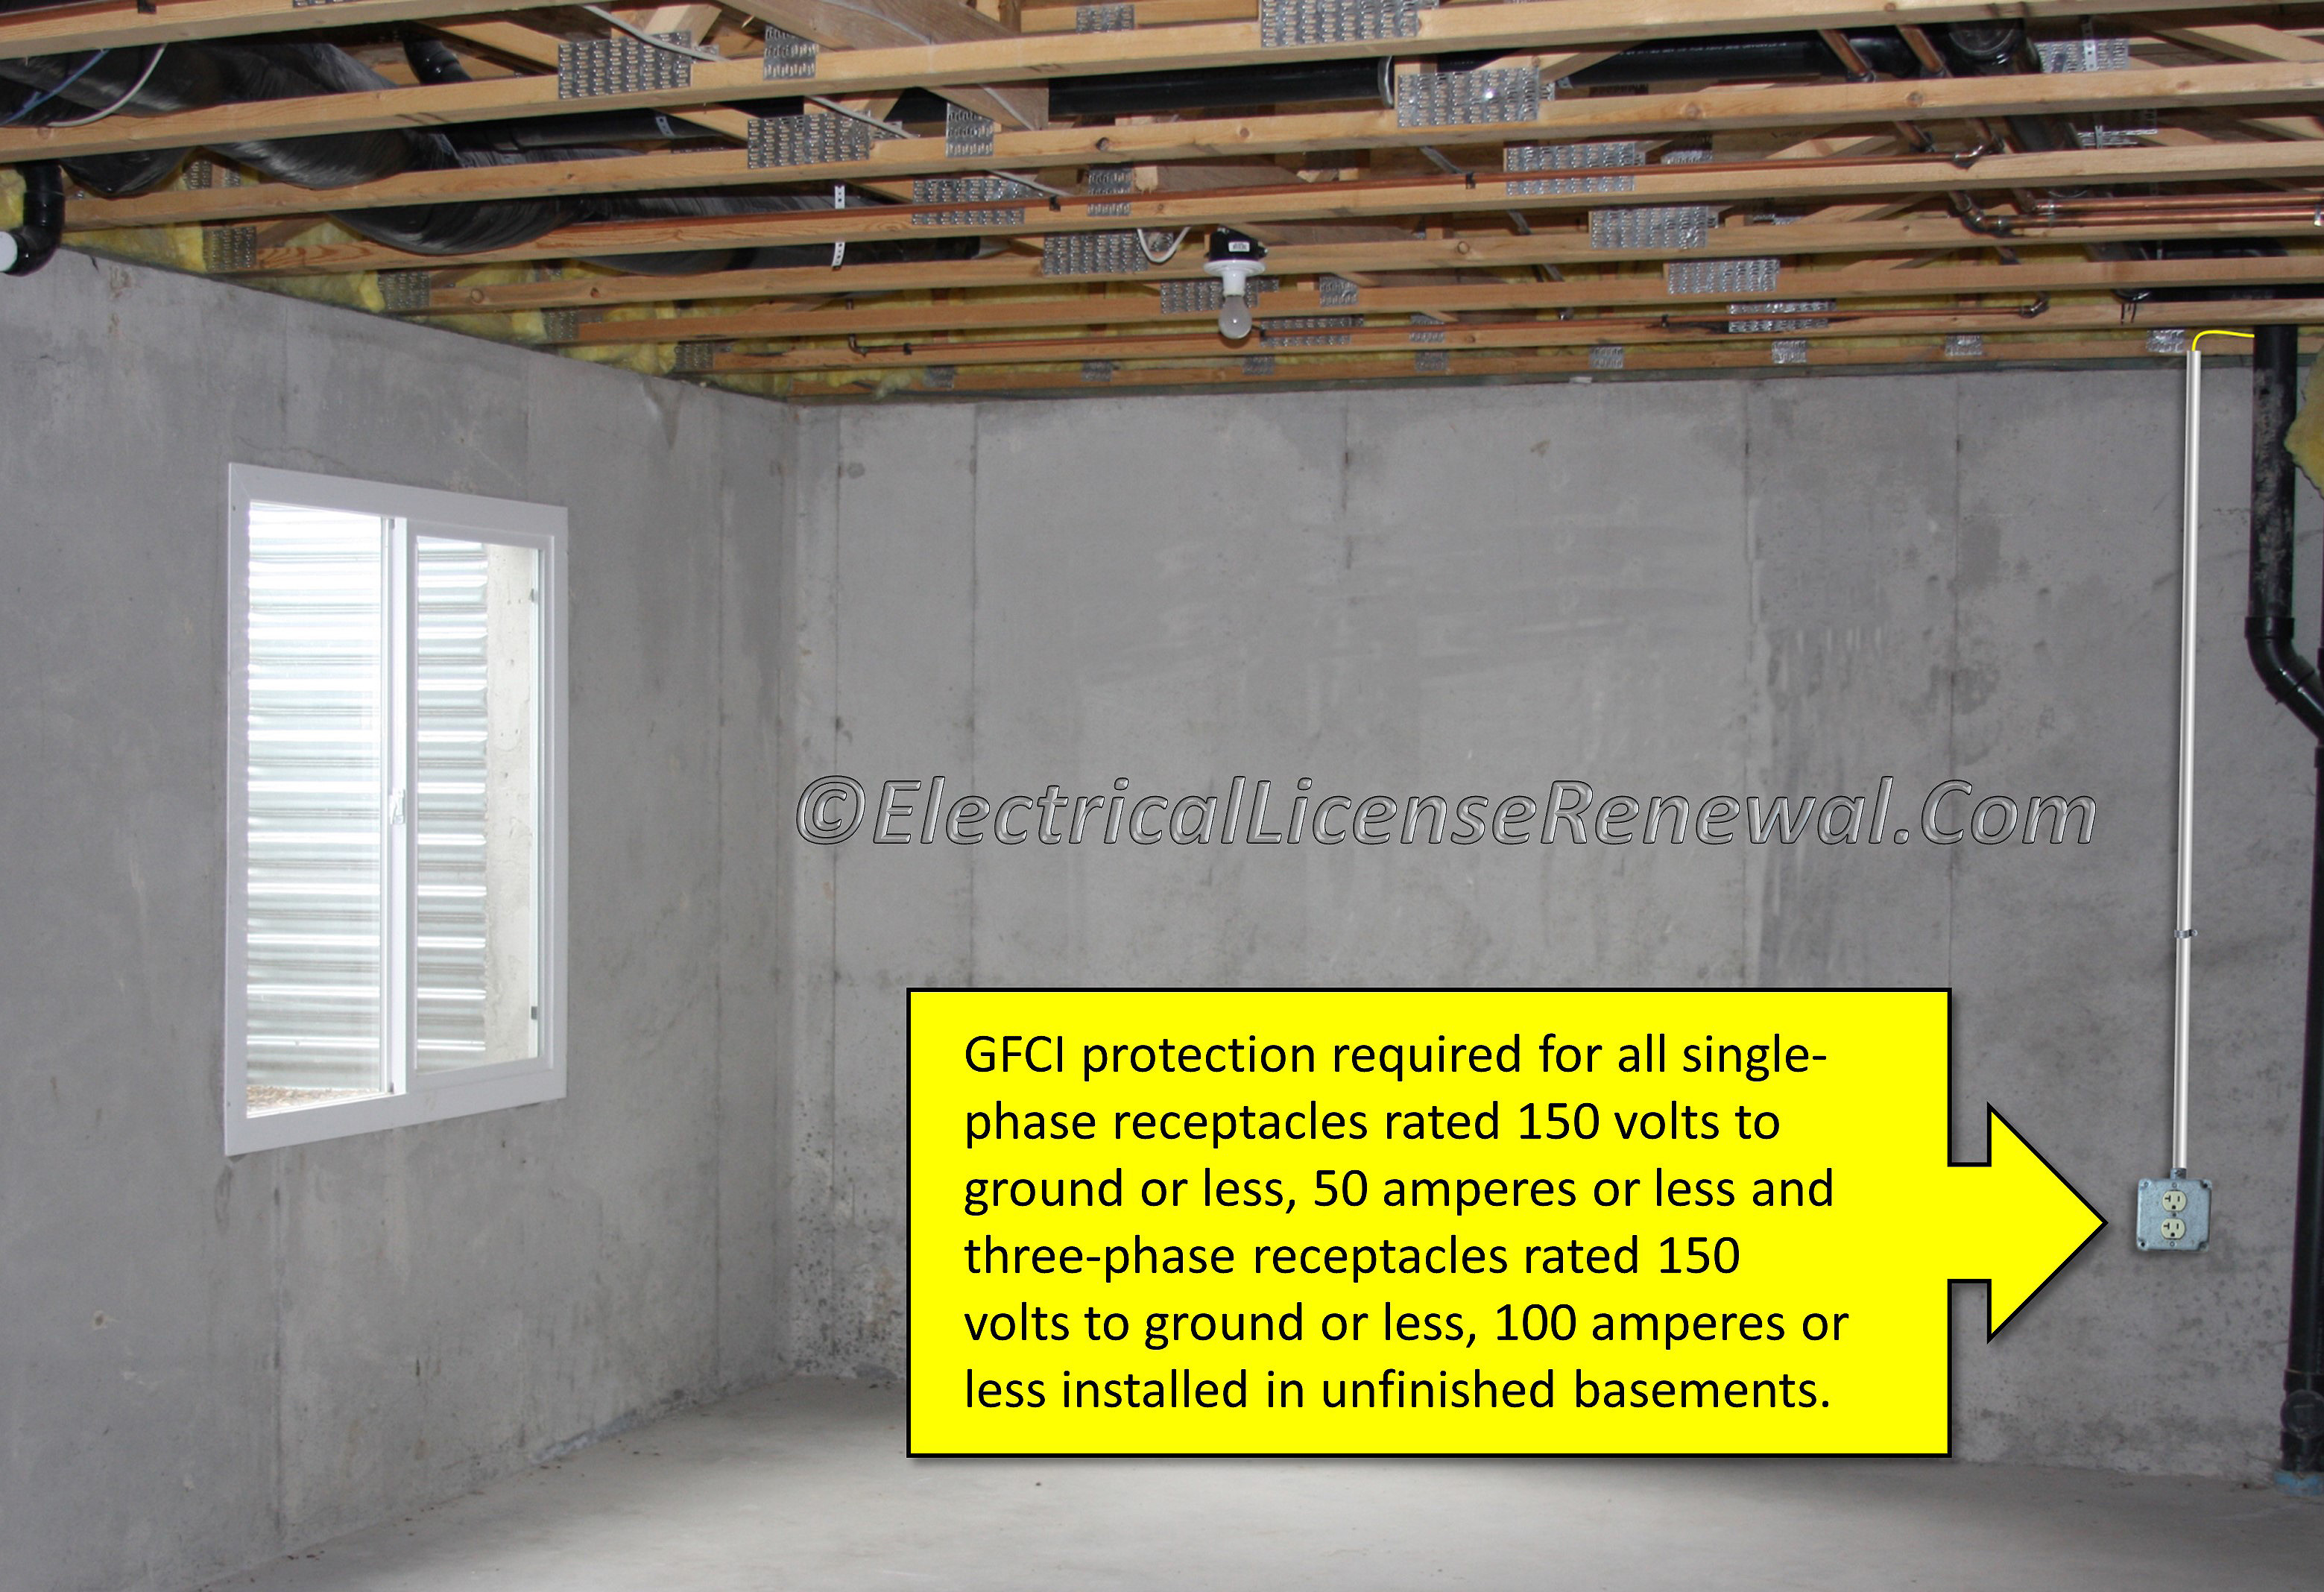 2108b Ground Fault Circuit Interrupter Protection For Personnel Gfci Groundfault Other Than Dwelling Units